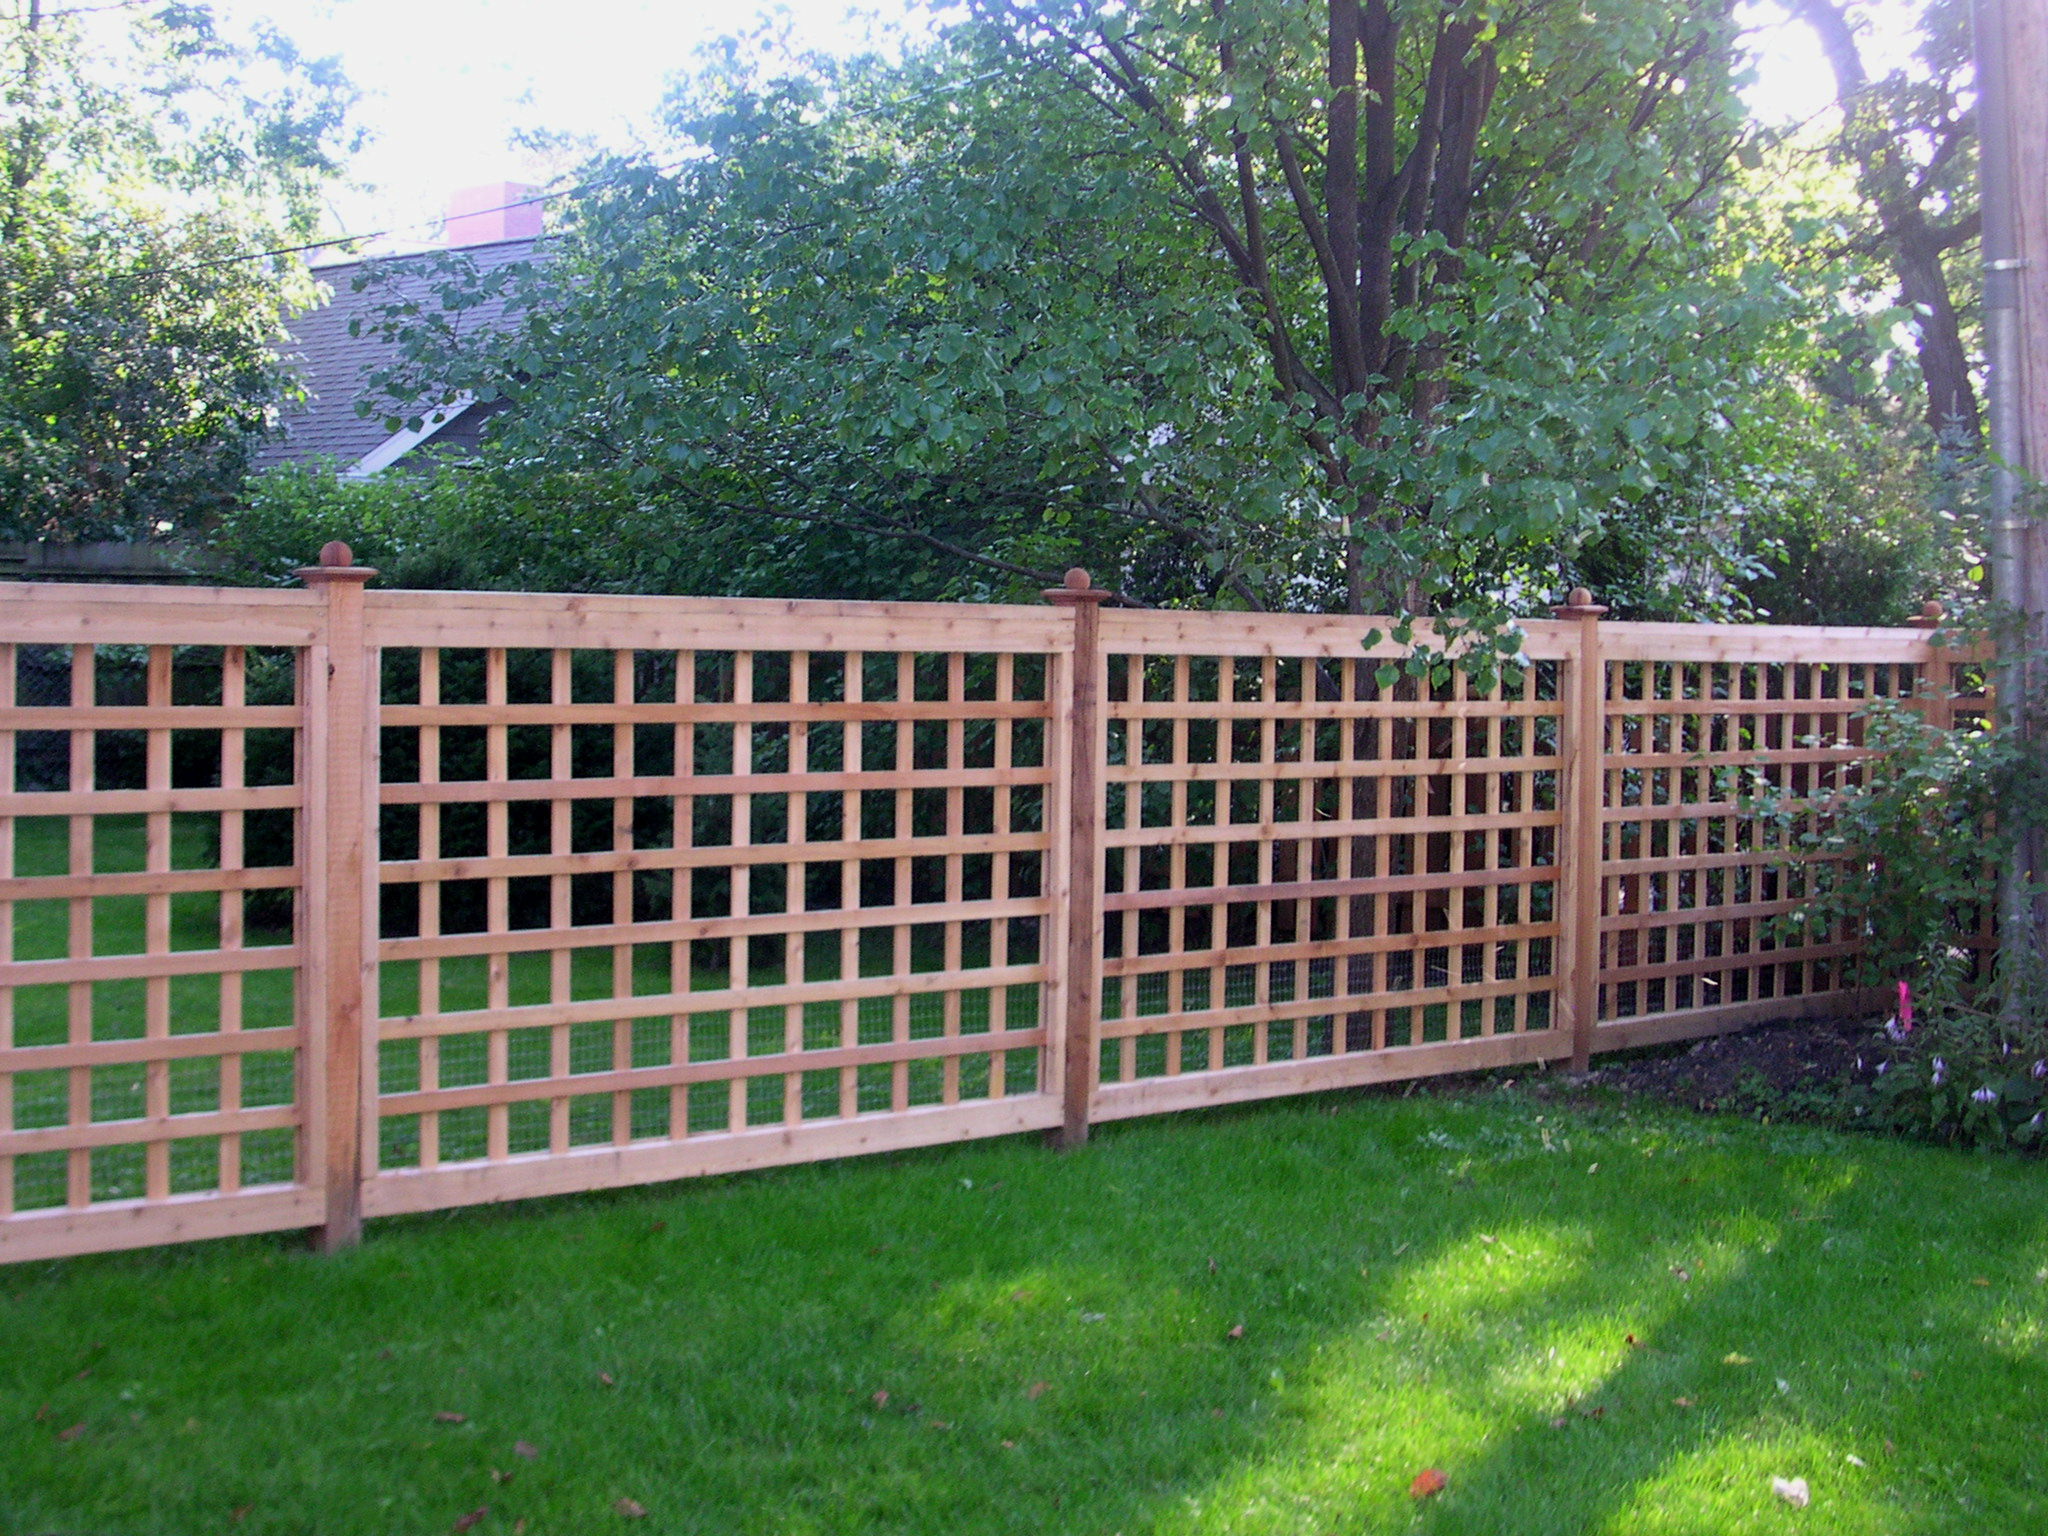 lattice fence design ideas lattice fence designs lattice fence designs